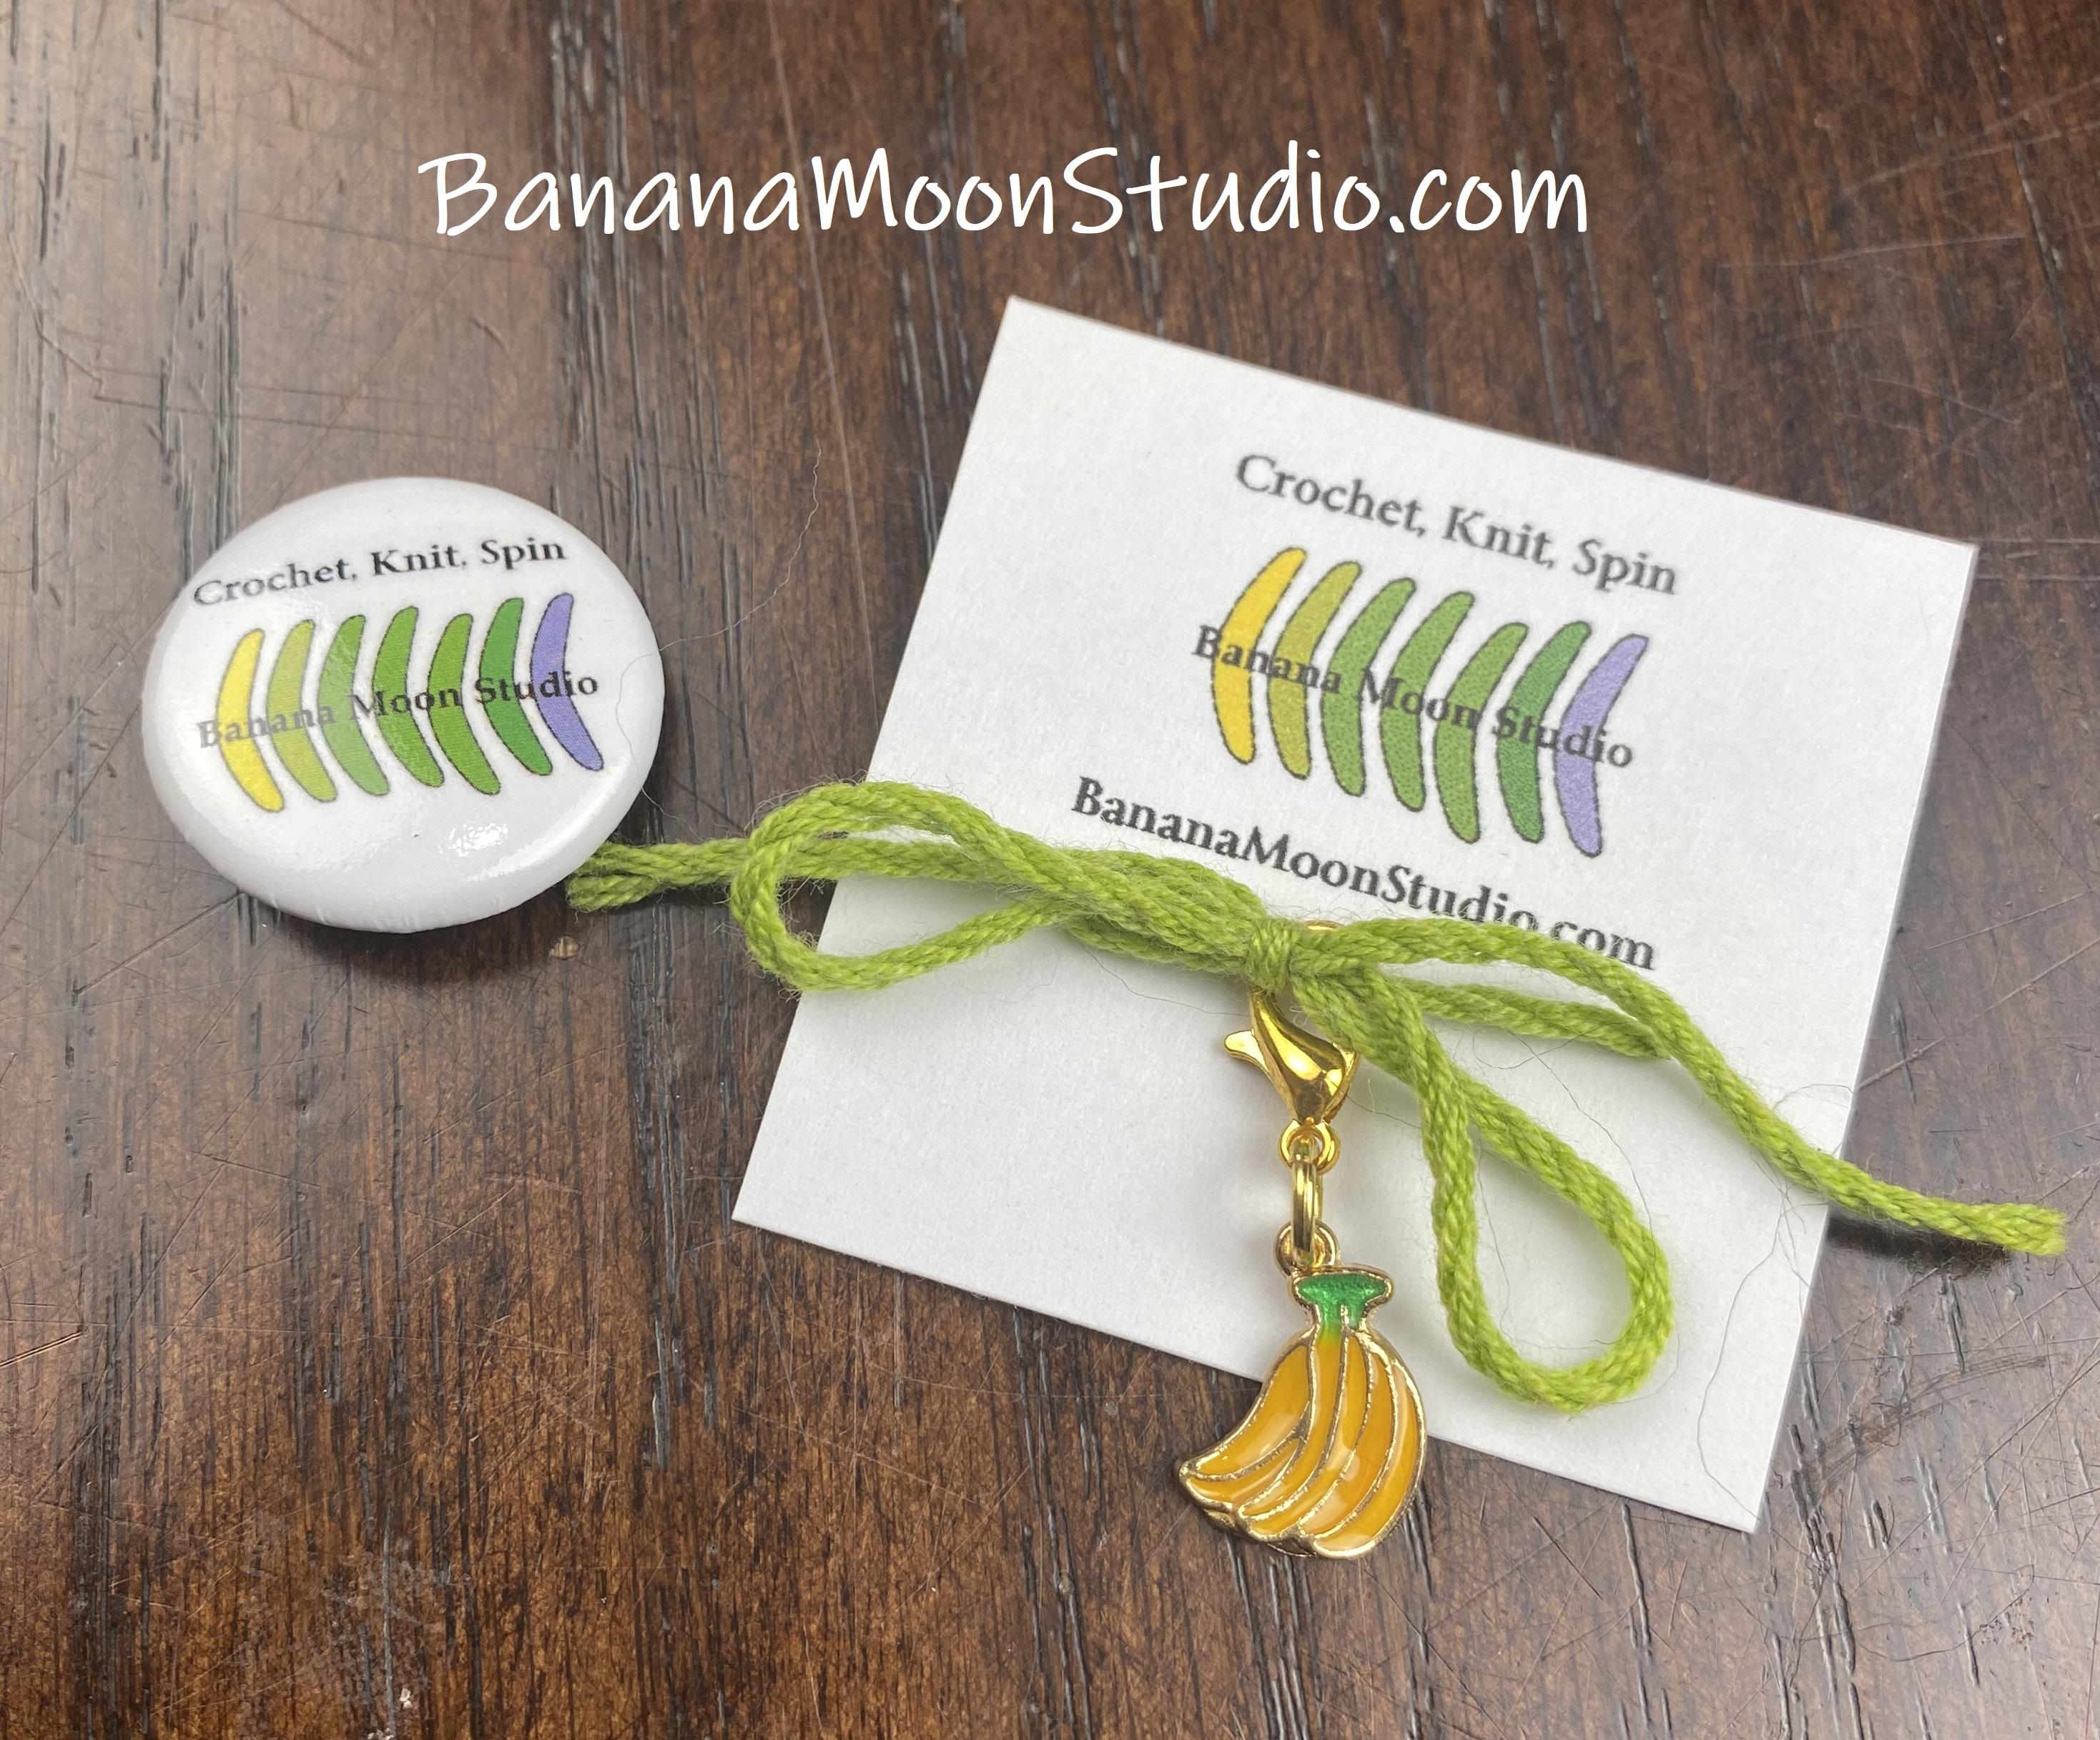 Small round pin with Banana Moon Studio logo. Small card with a Banana Moon Studio logo, a bow made of green yarn, and a bunch of bananas stitch marker attached to it. Wooden table in the background. Text reads: BananaMoonStudio.com/ Crochet, knit, spin.